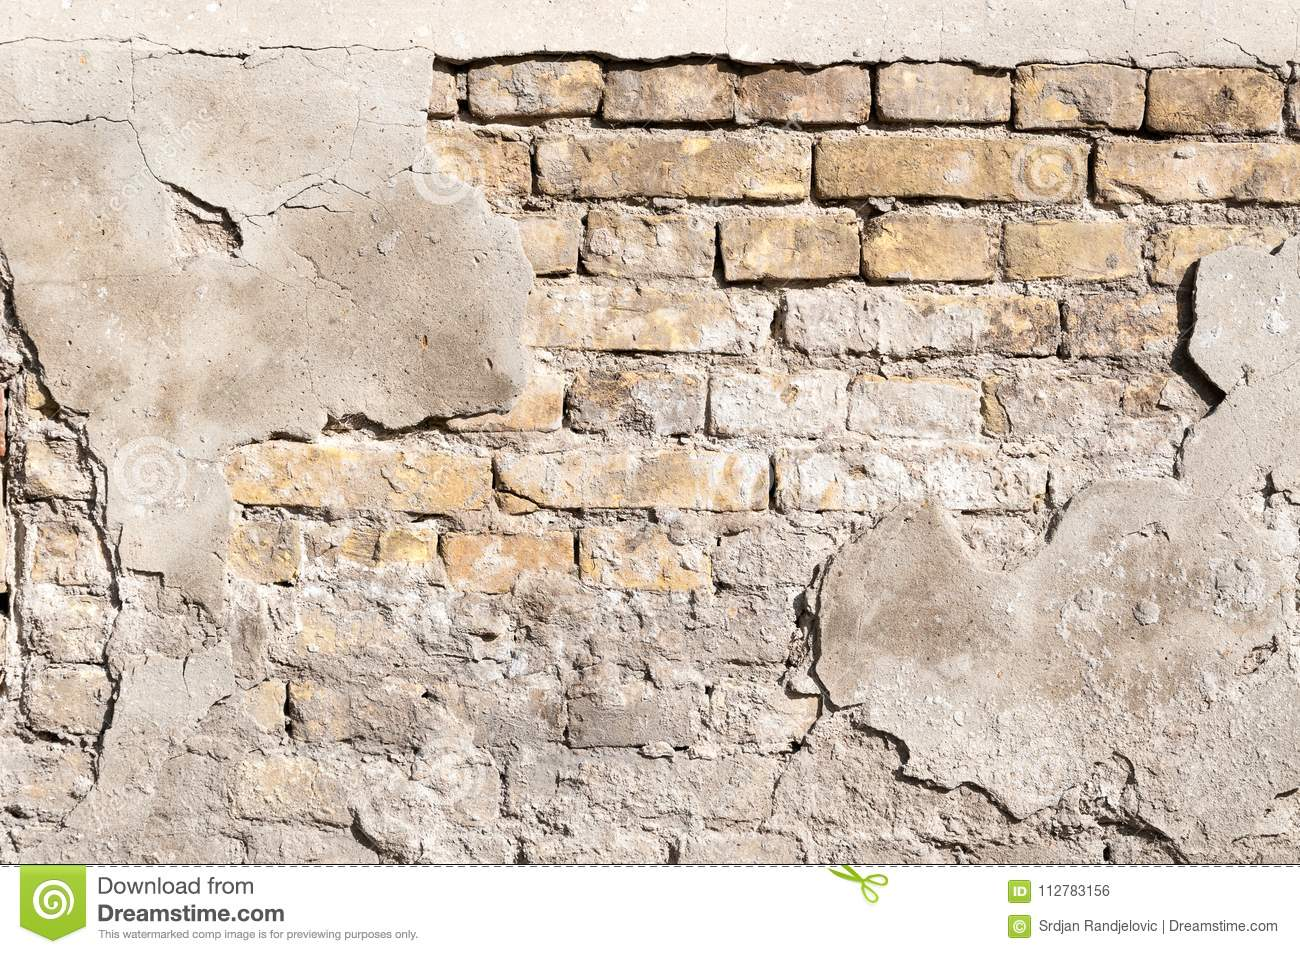 Bad Foundation Base On Old House Or Building Cracked Plaster Facade Wall With Brick Background Stock Photo Image Of Builder Defect 112783156